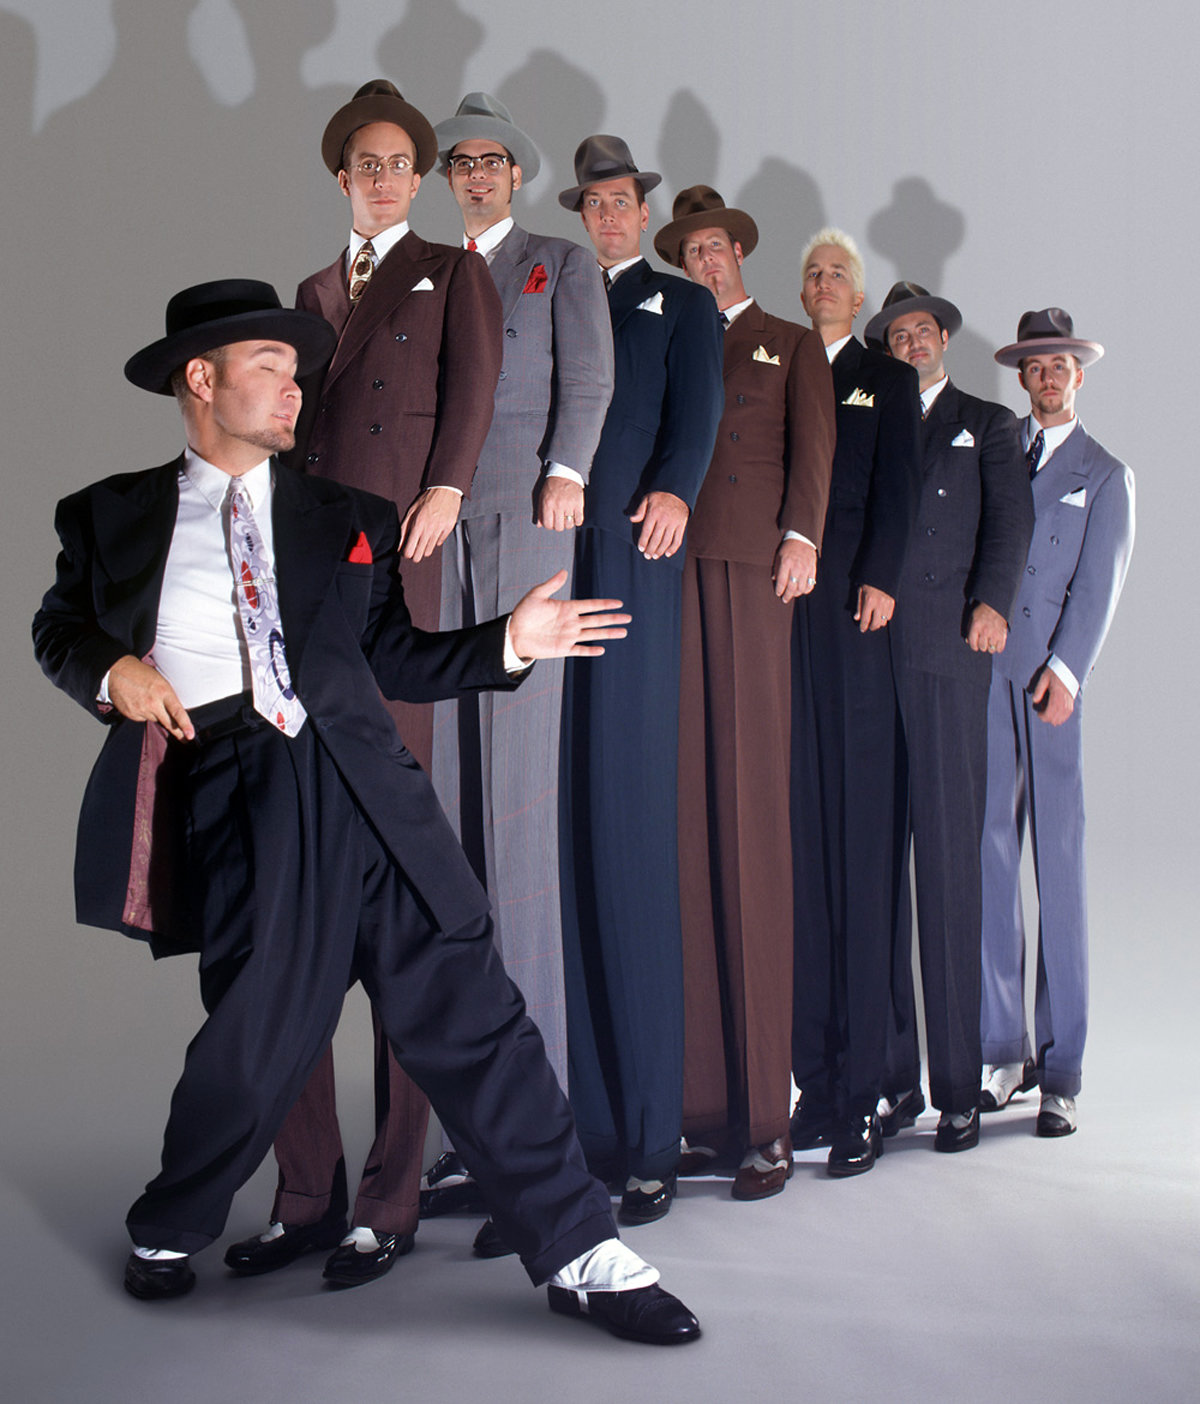 SWINGIN' SOUNDS: Scotty Morris and his Big Bad Voodoo Daddy bandmates will perform at the Park Theatre in Cranston on Sept. 26. The group also plans to begin work on a new album in January.